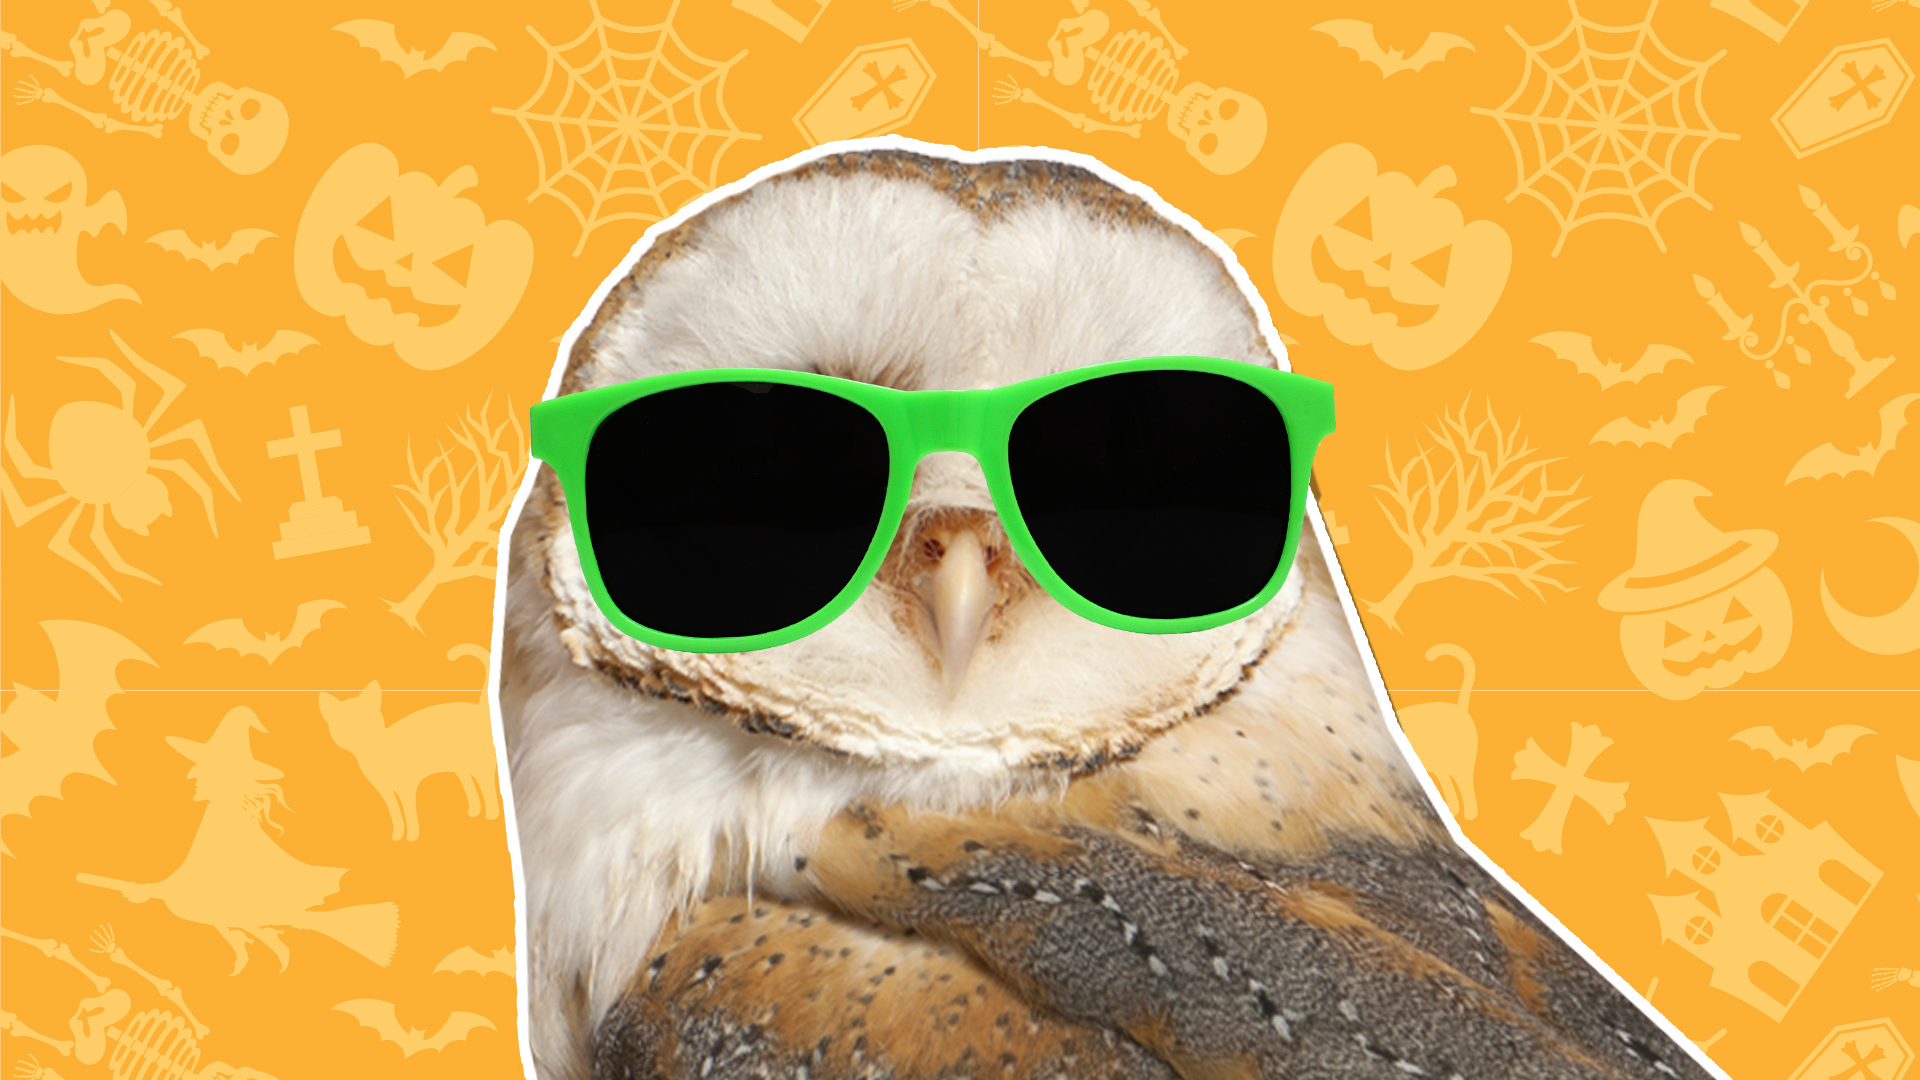 A brown owl wearing green sunglasses